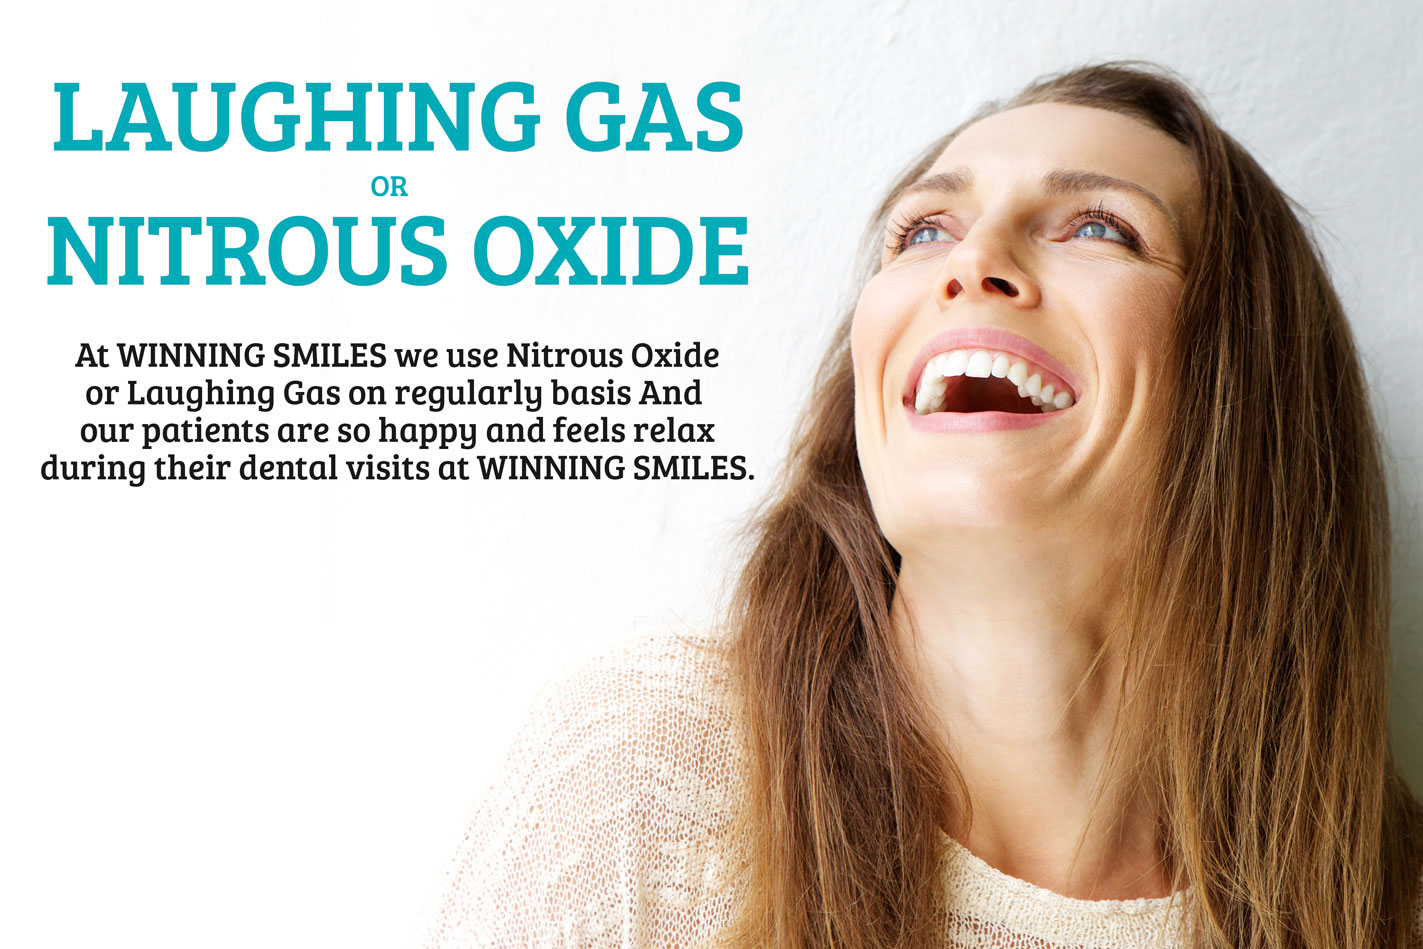 Laughing Gas or Nitrous Oxide